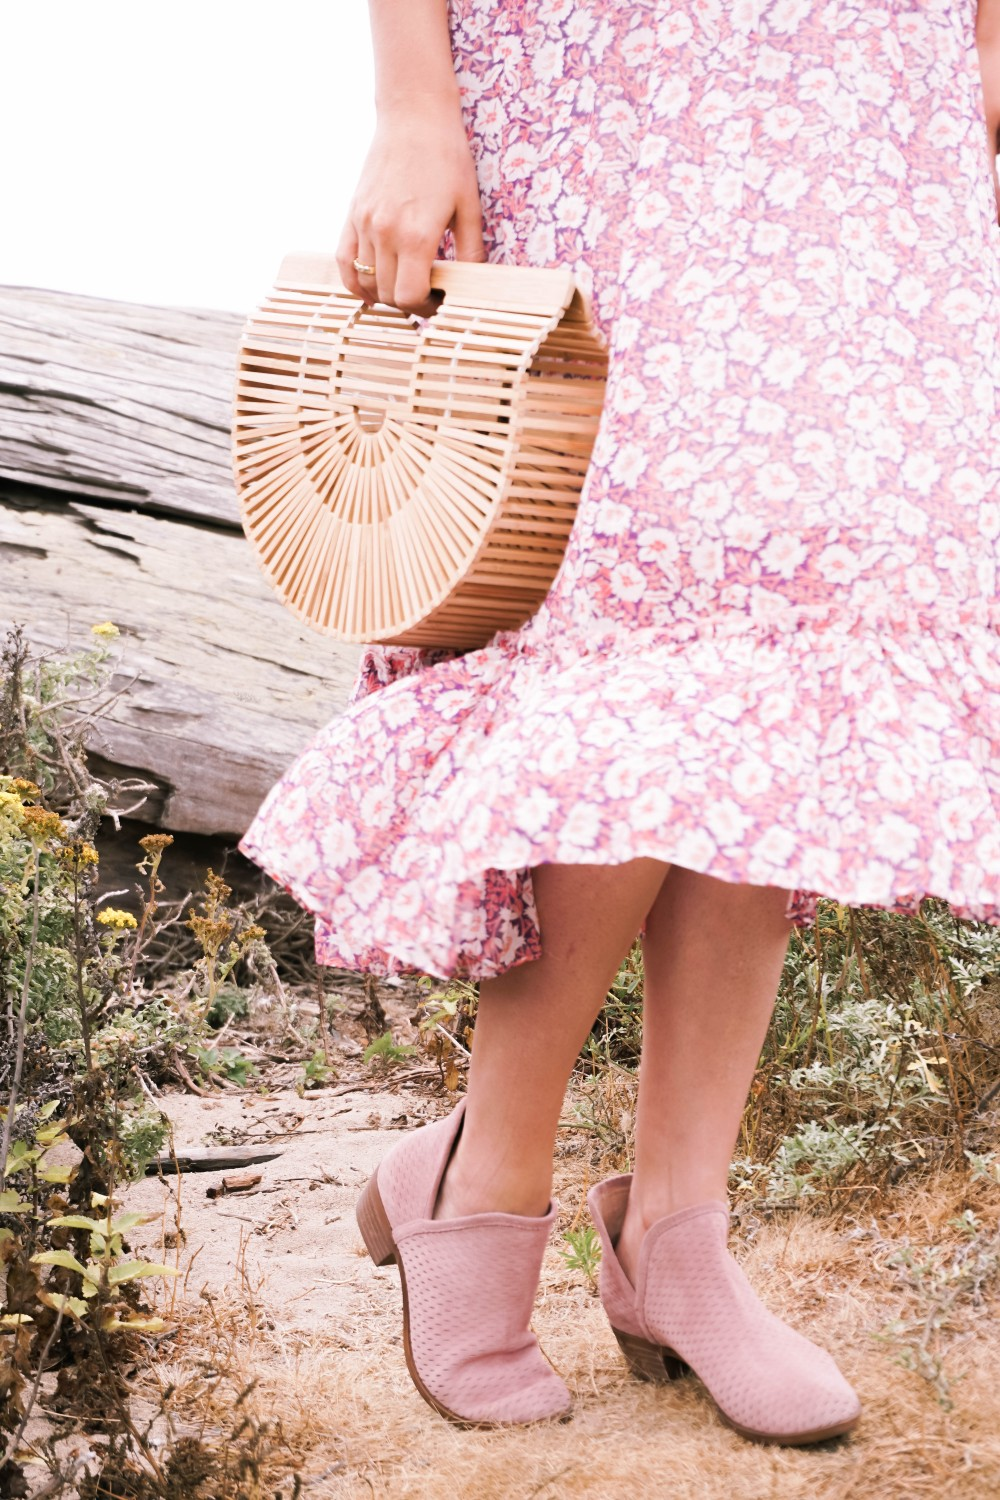 Breezy Beach Dress-Summer Floral Dress-Rebecca Minkoff-Outfit Inspiration-Visit Half Moon Bay-Denim Moto Jacket-Summer Style-Have Need Want 10